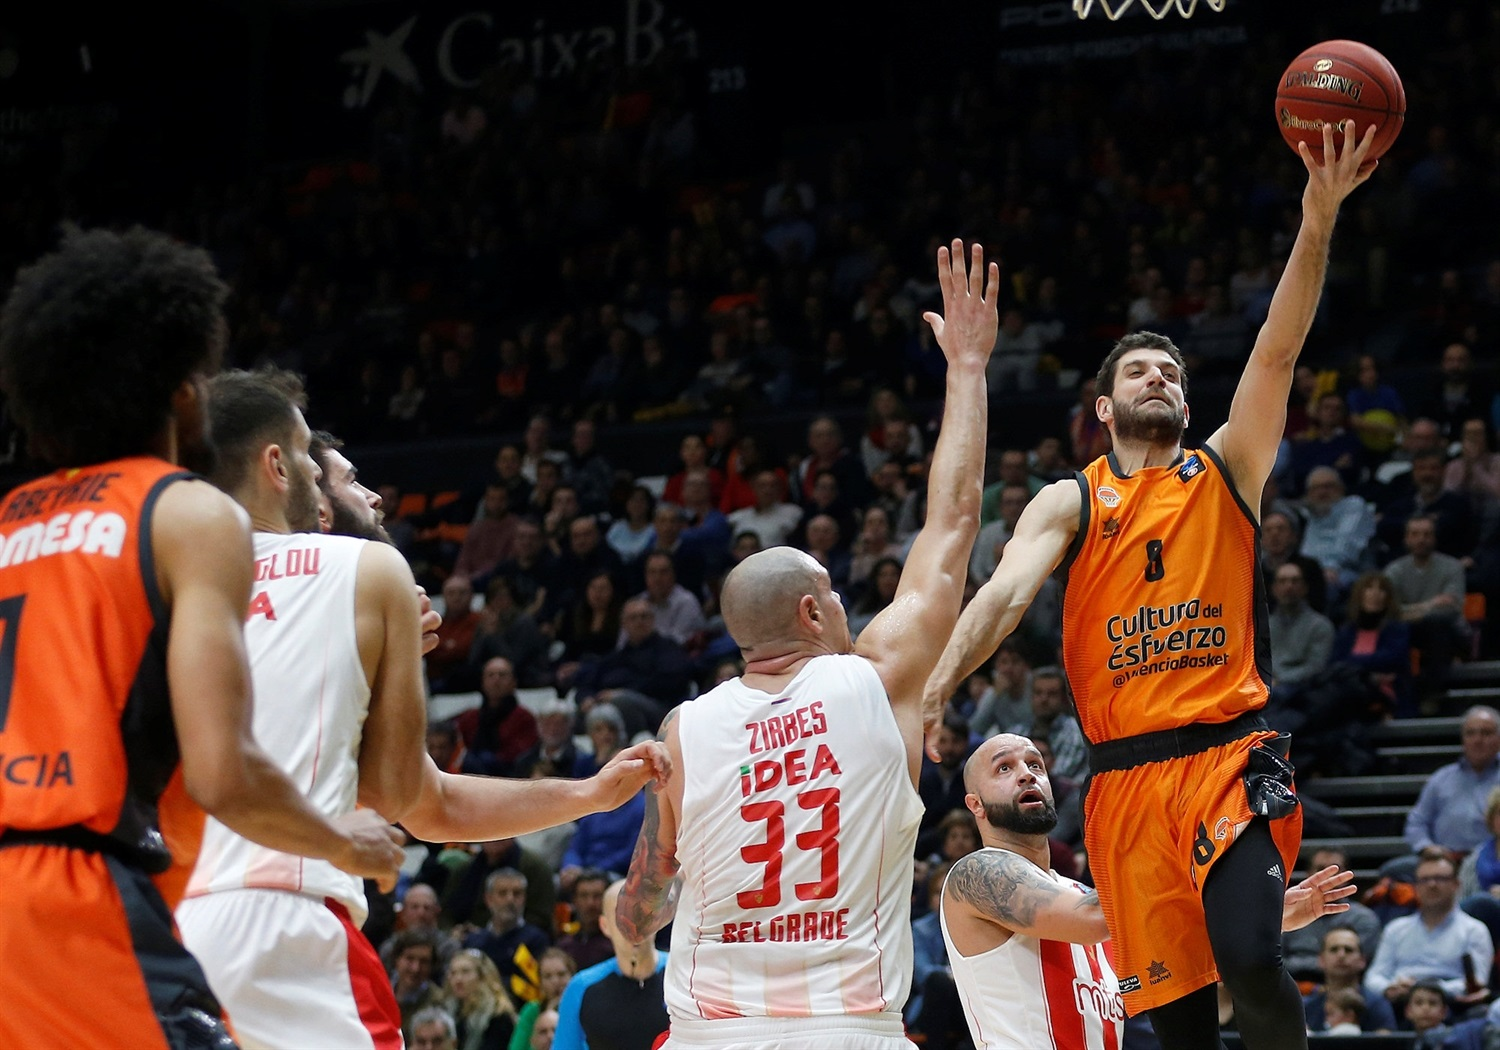 Antoine Diot - Valencia Basket (photo Miguel Angel Polo - Valencia) - EC18